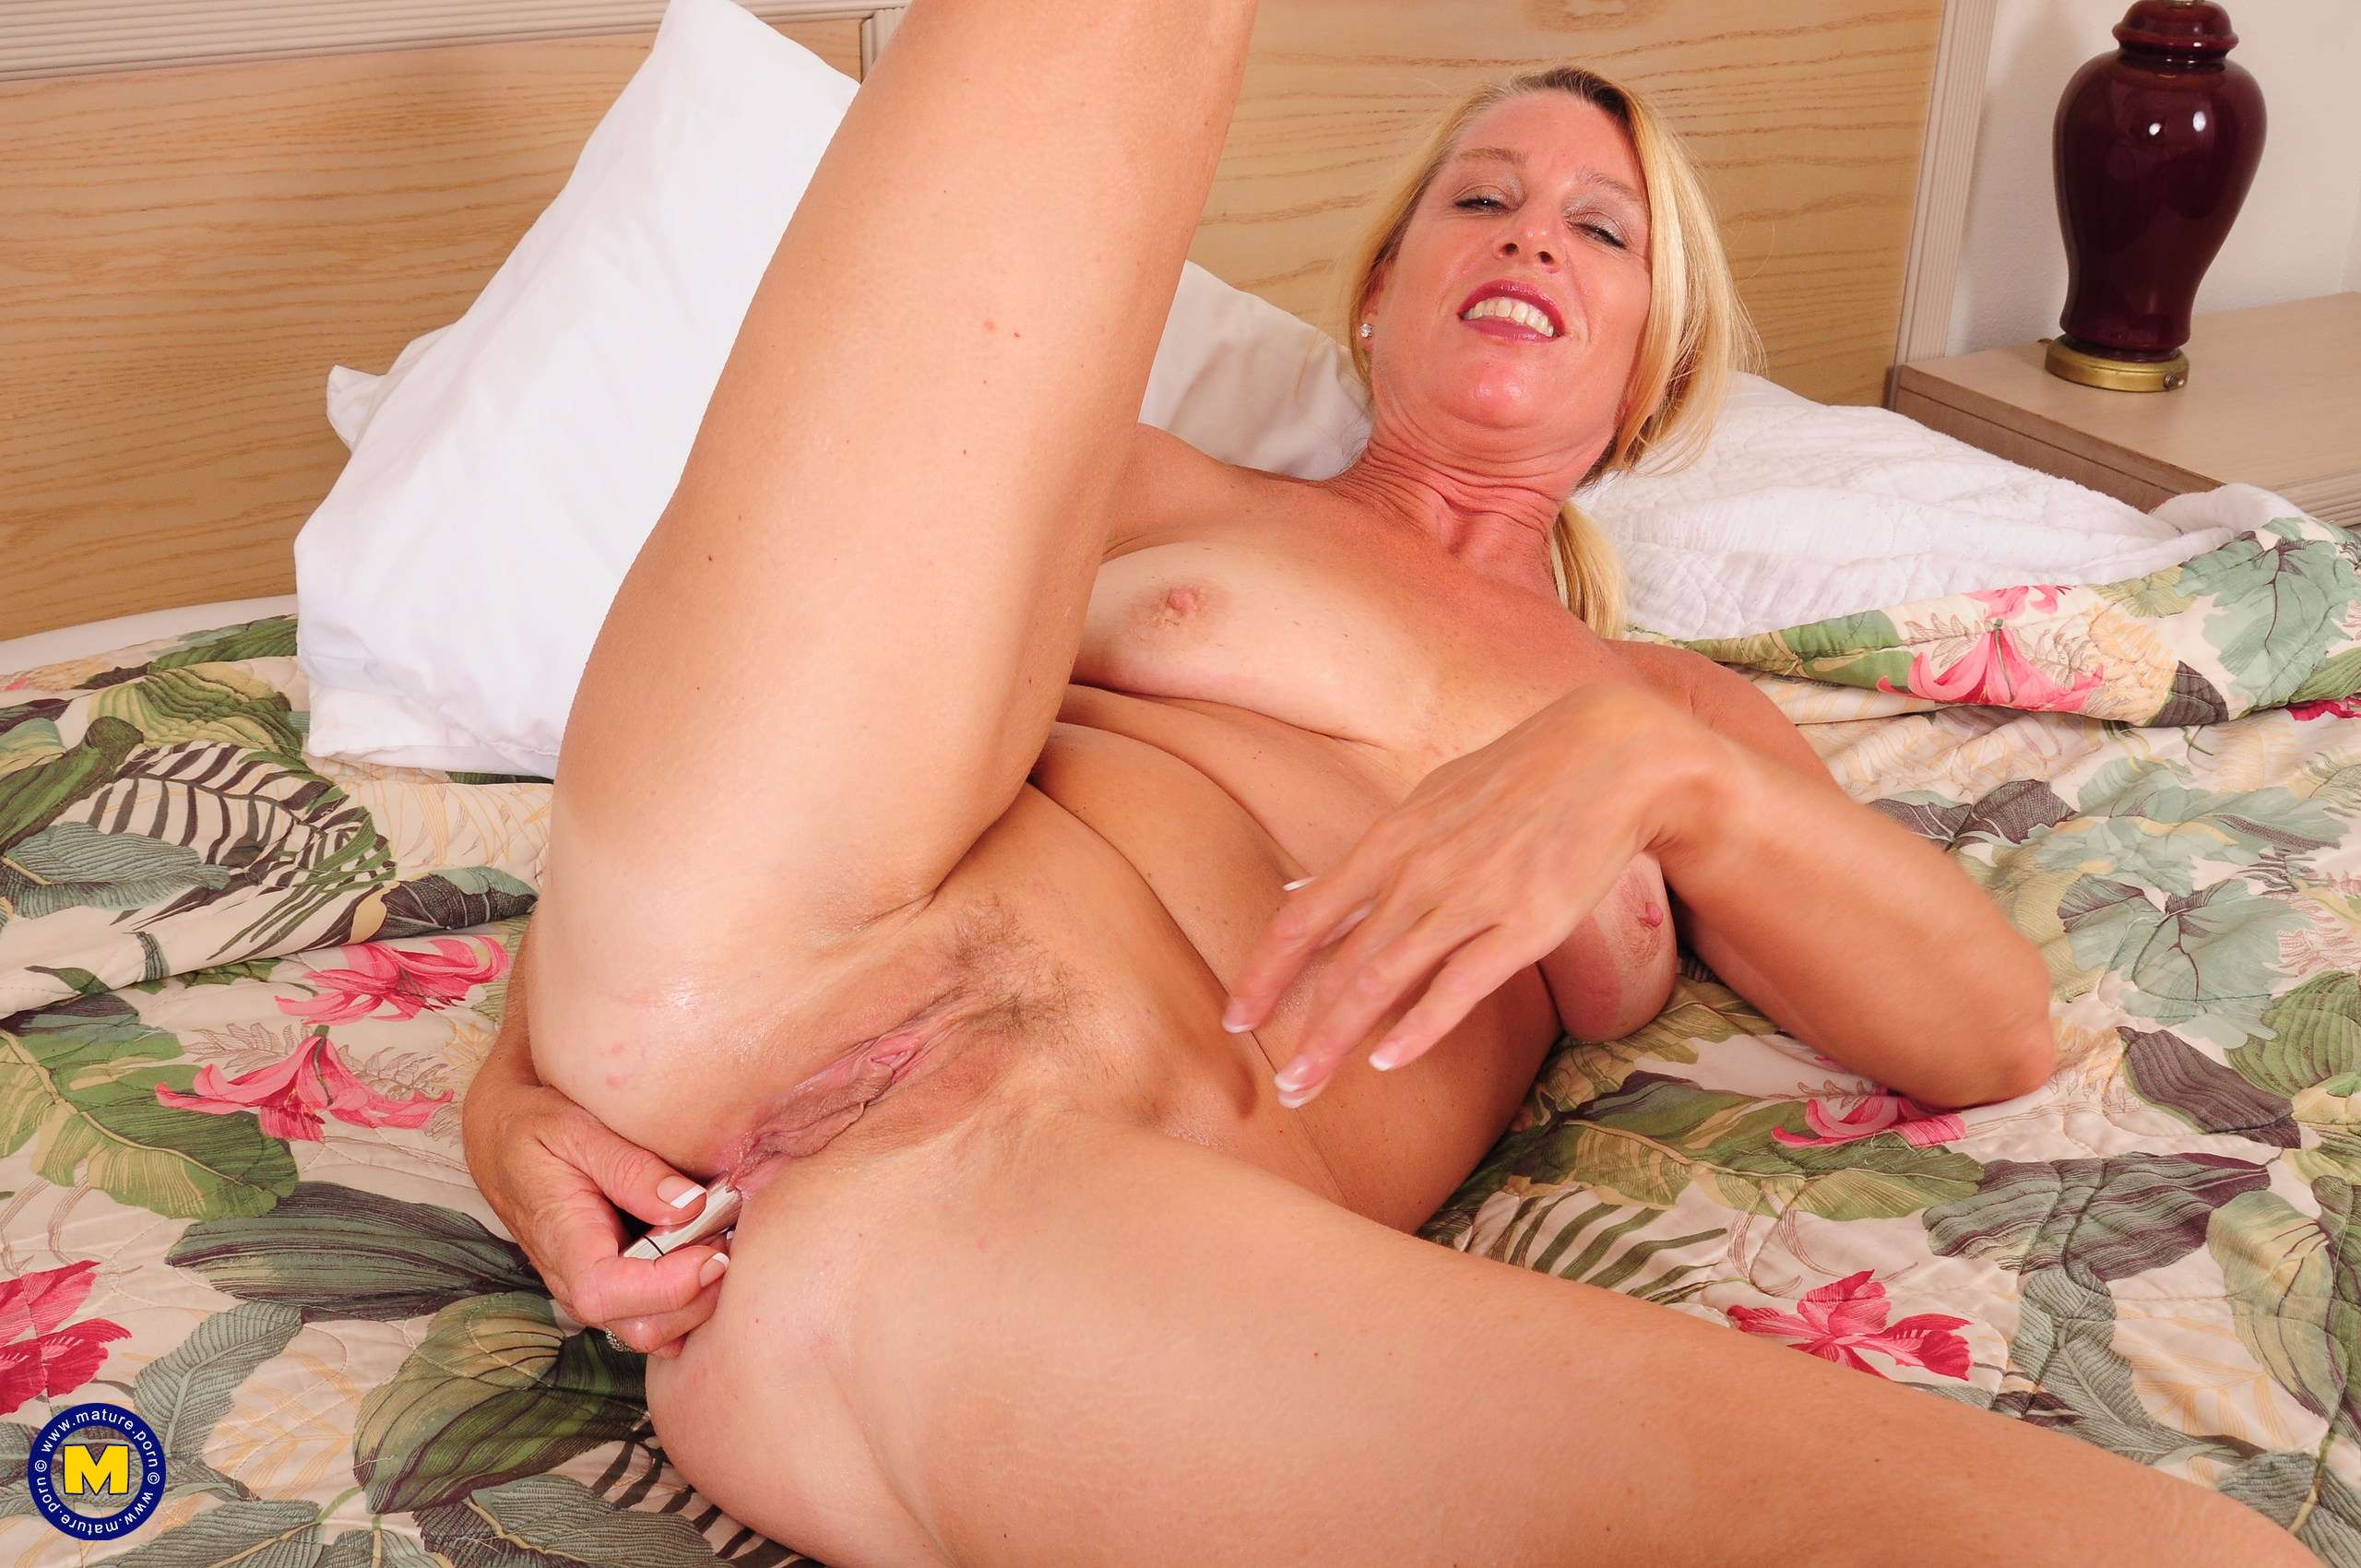 Naughty American housewife playing in her hotelroom with her pussy